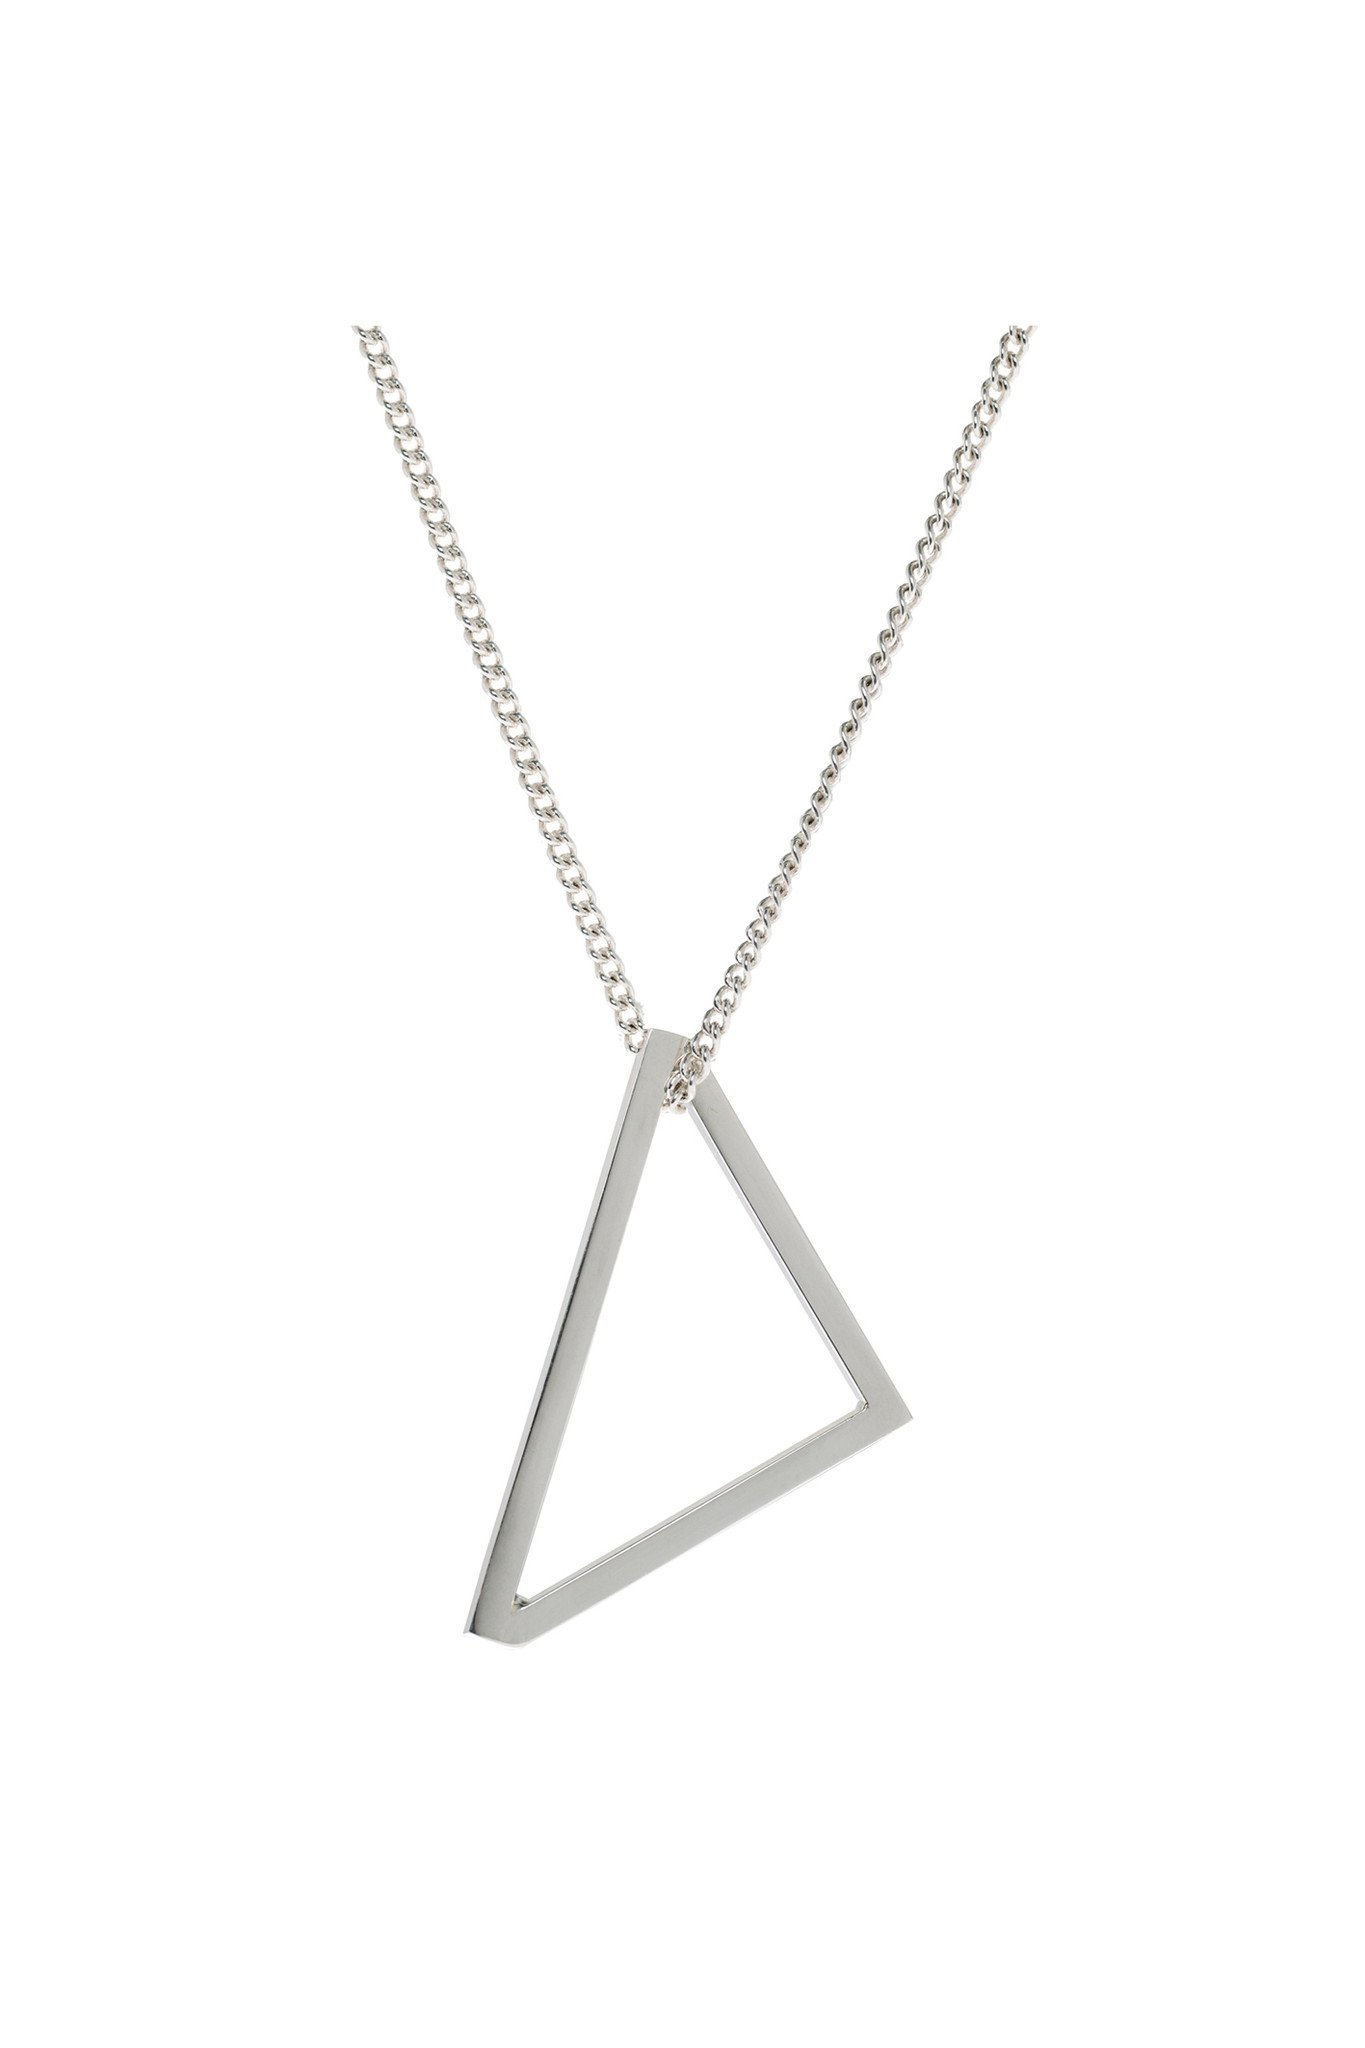 Long Shot, Silver Pendant by Sally Lane Jewellery on curated-crowd.com